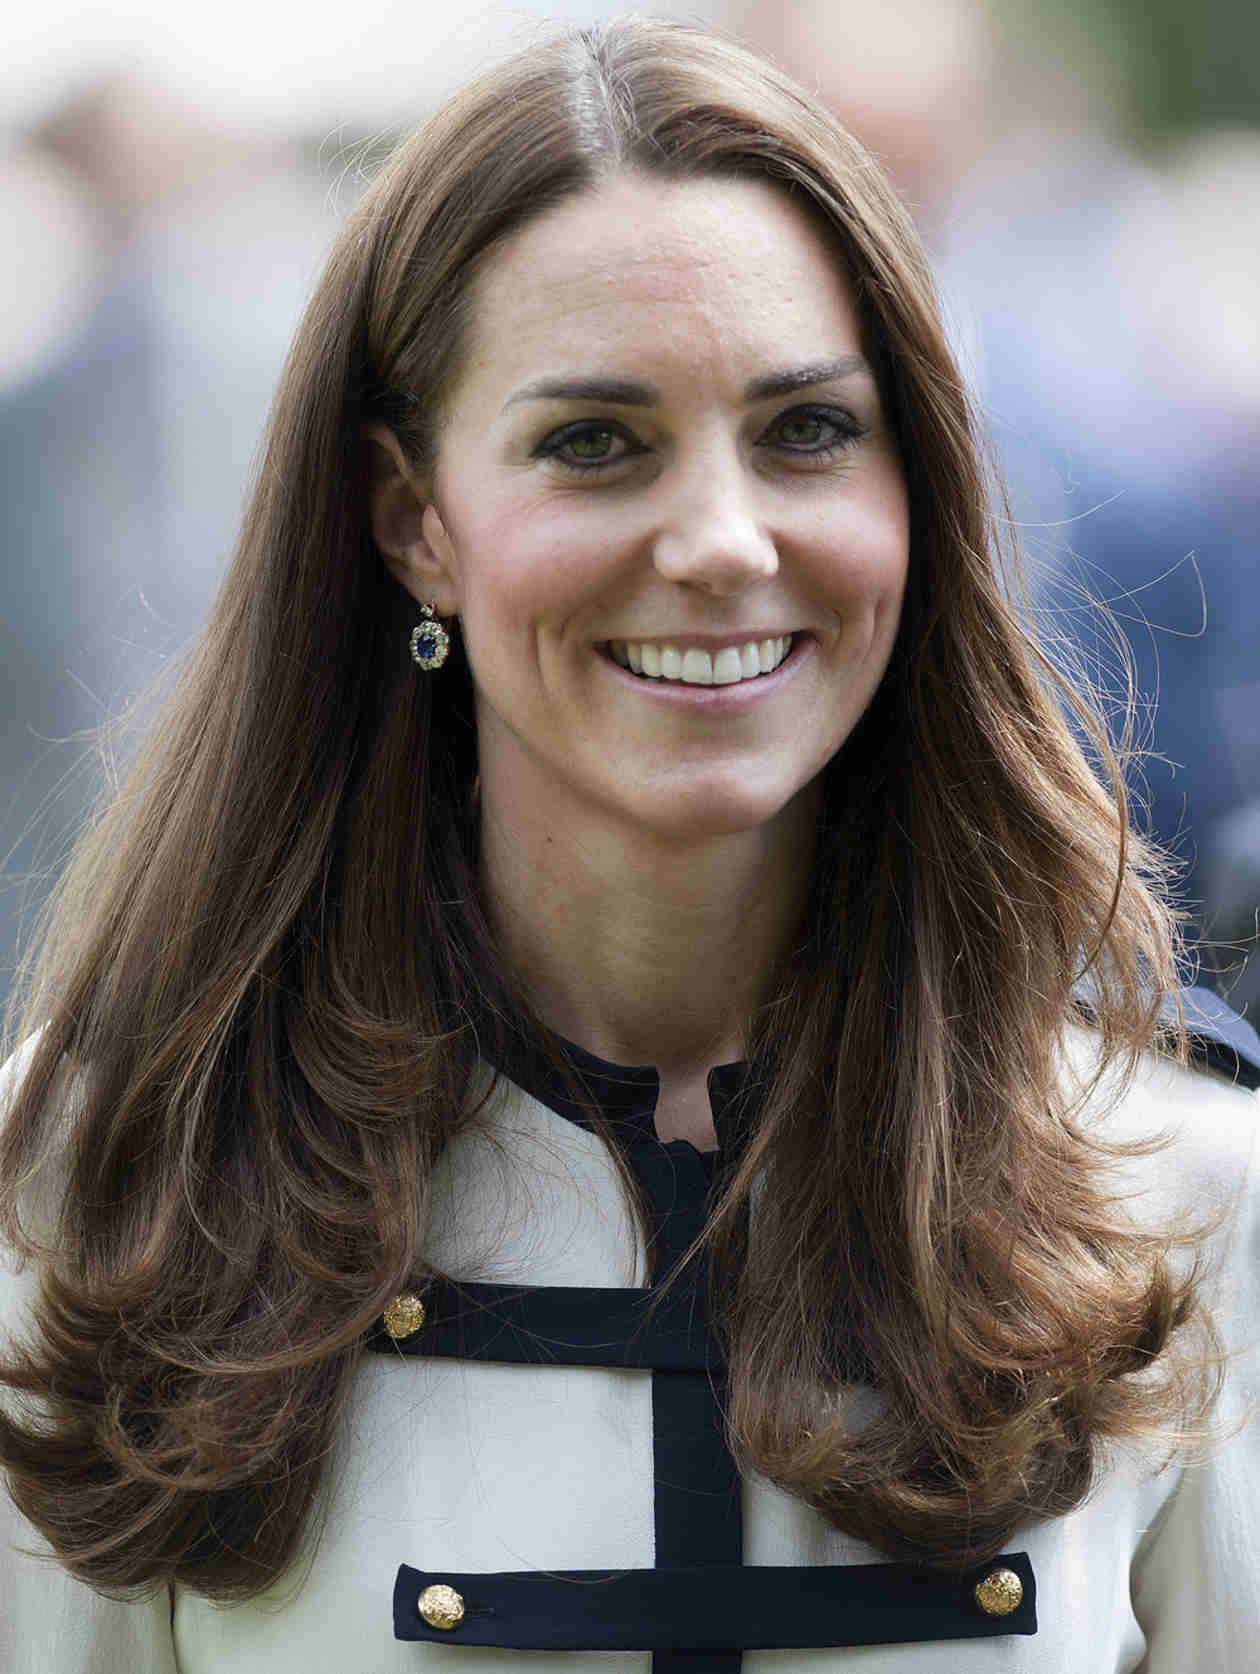 Is Kate Middleton Pregnant With Baby No. 2? People Are Putting Money on It!